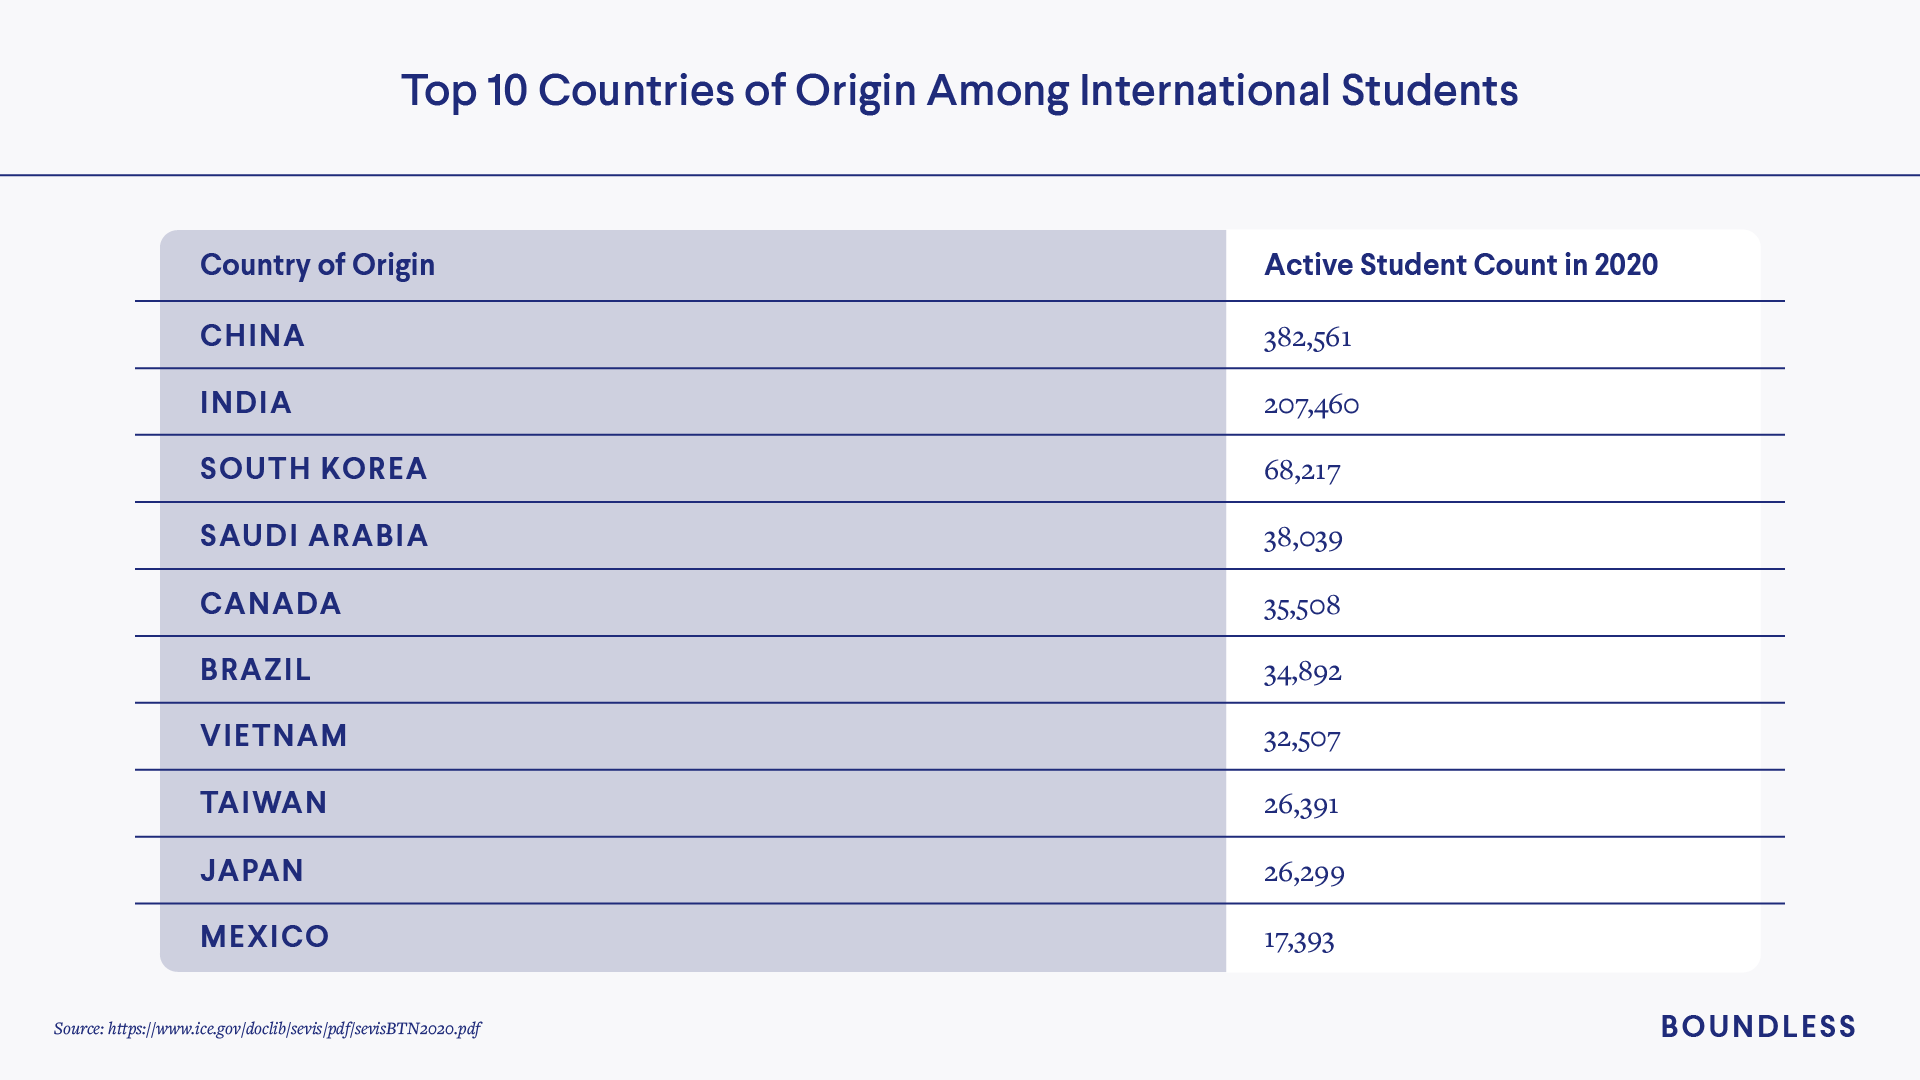 Top countries of origin for U.S. international students